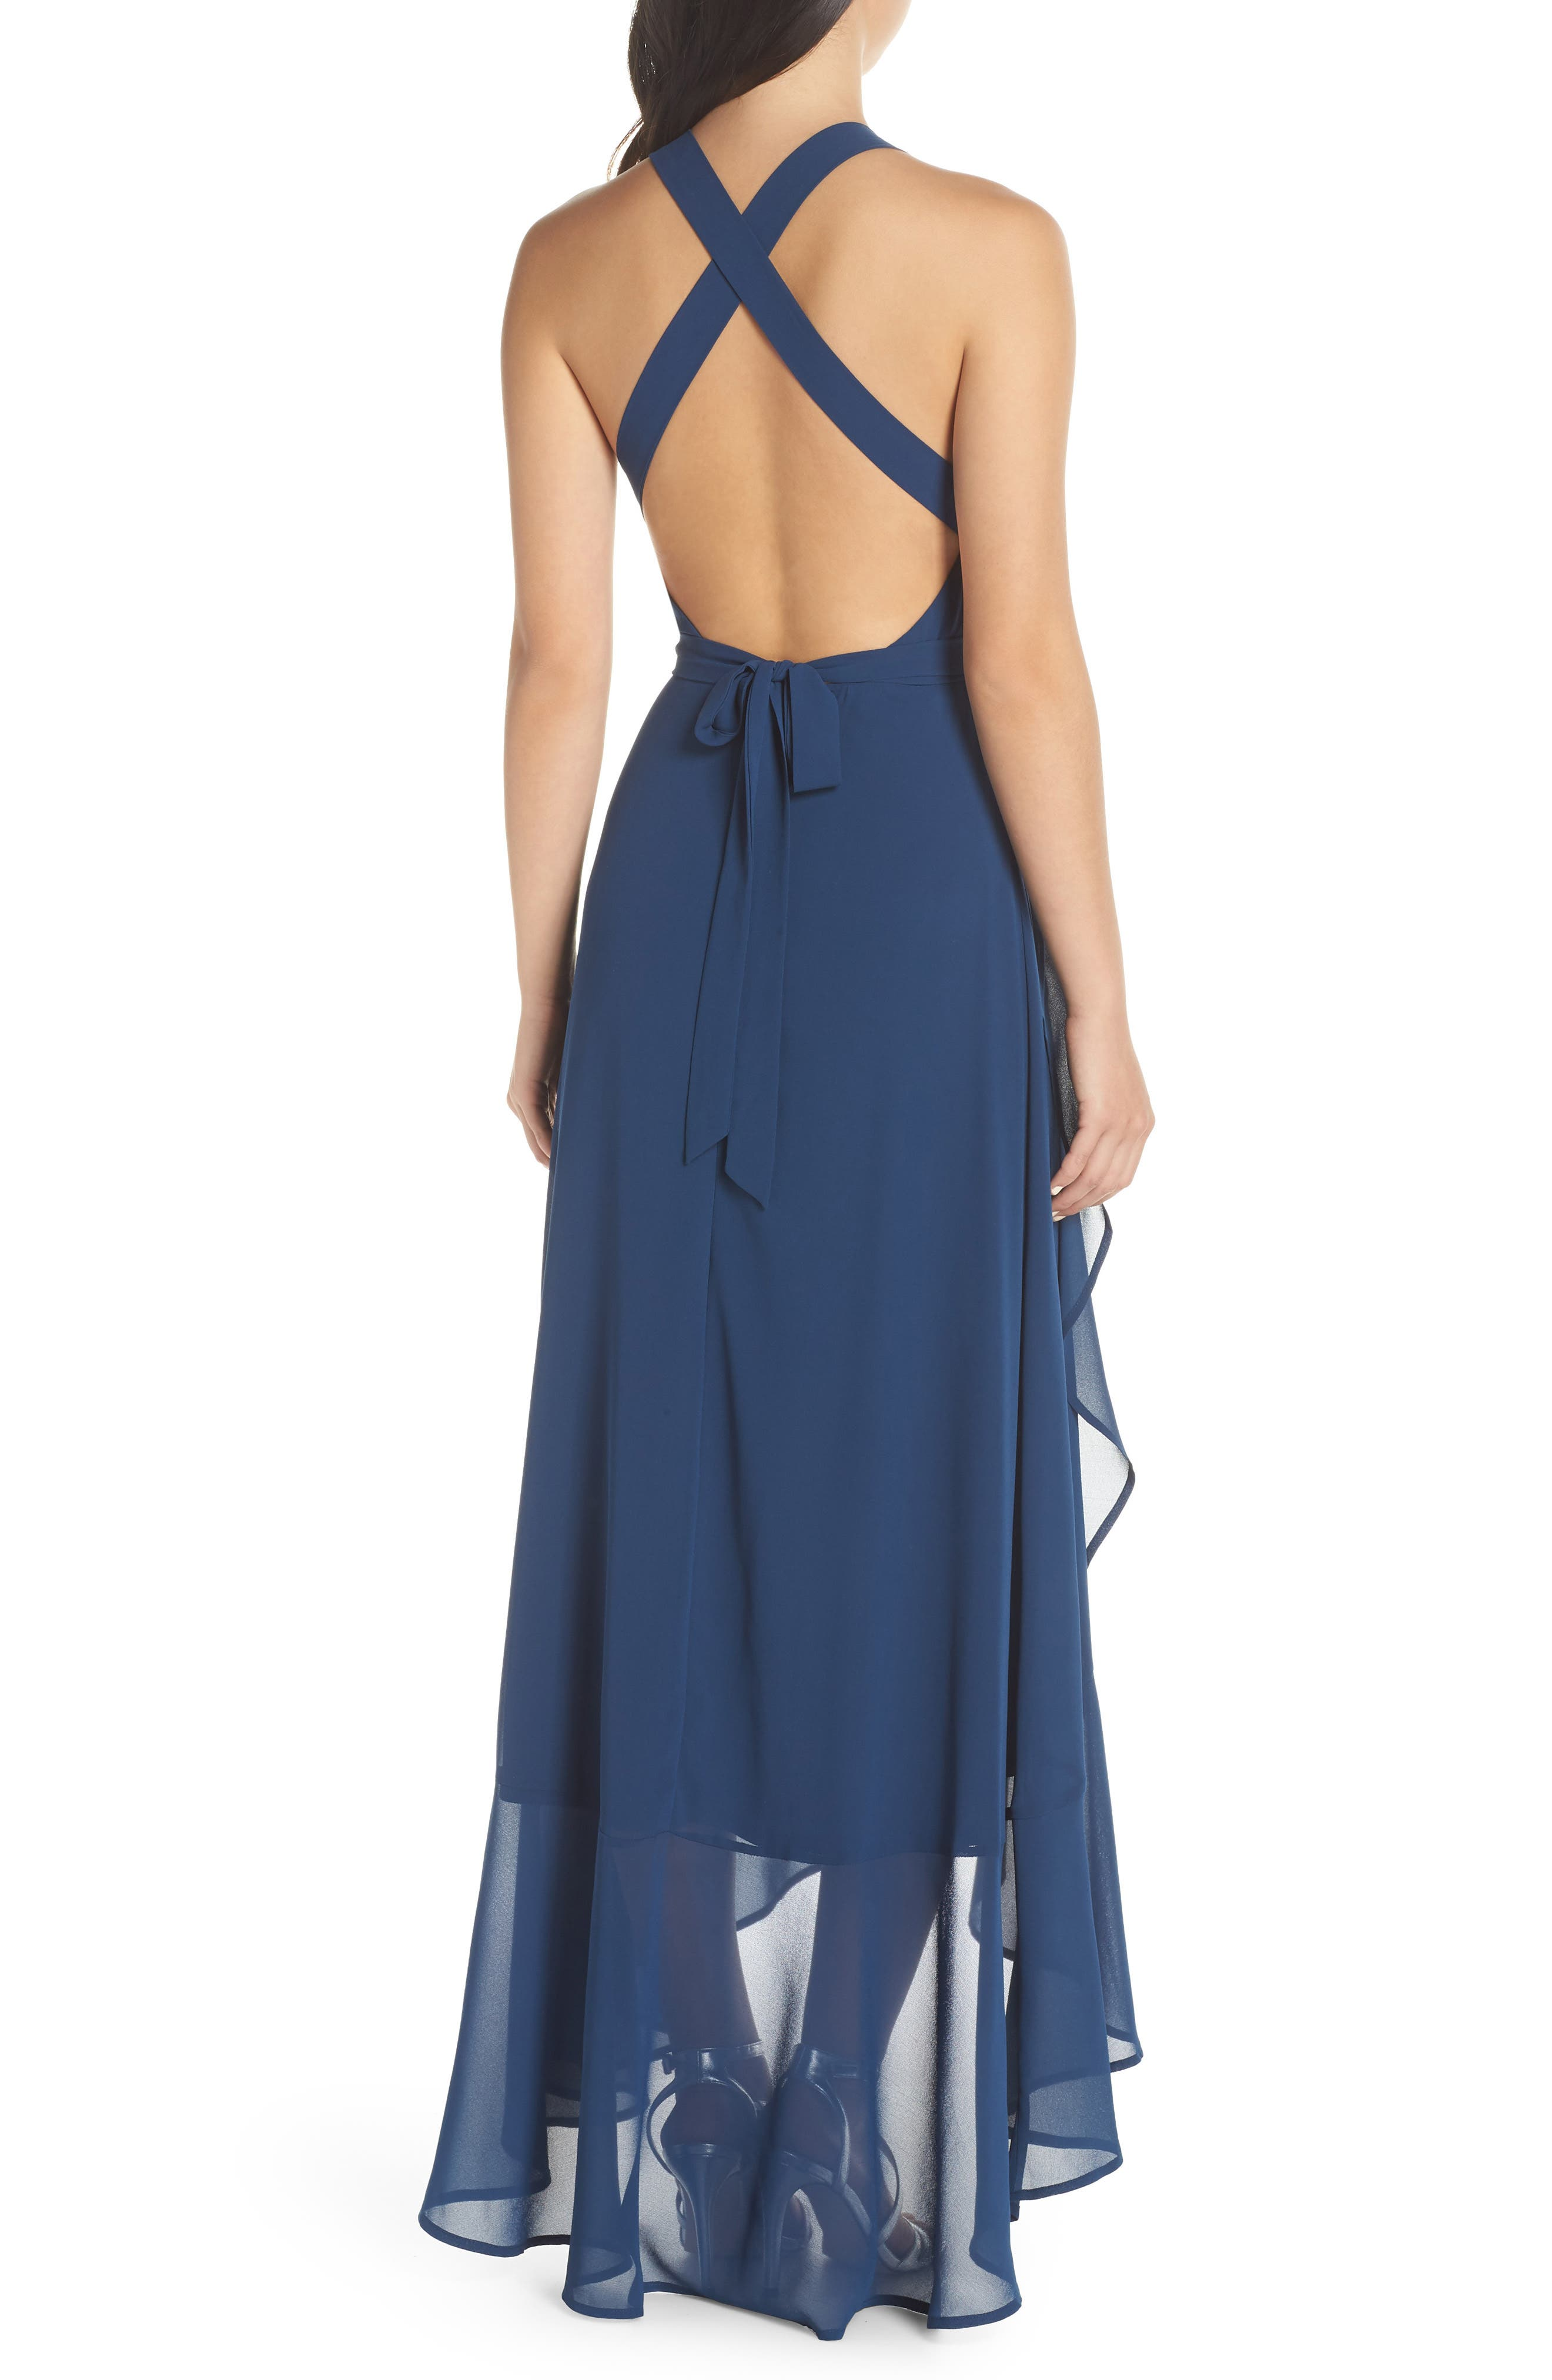 LULUS, Wrap of Luxury Convertible Gown, Alternate thumbnail 2, color, NAVY